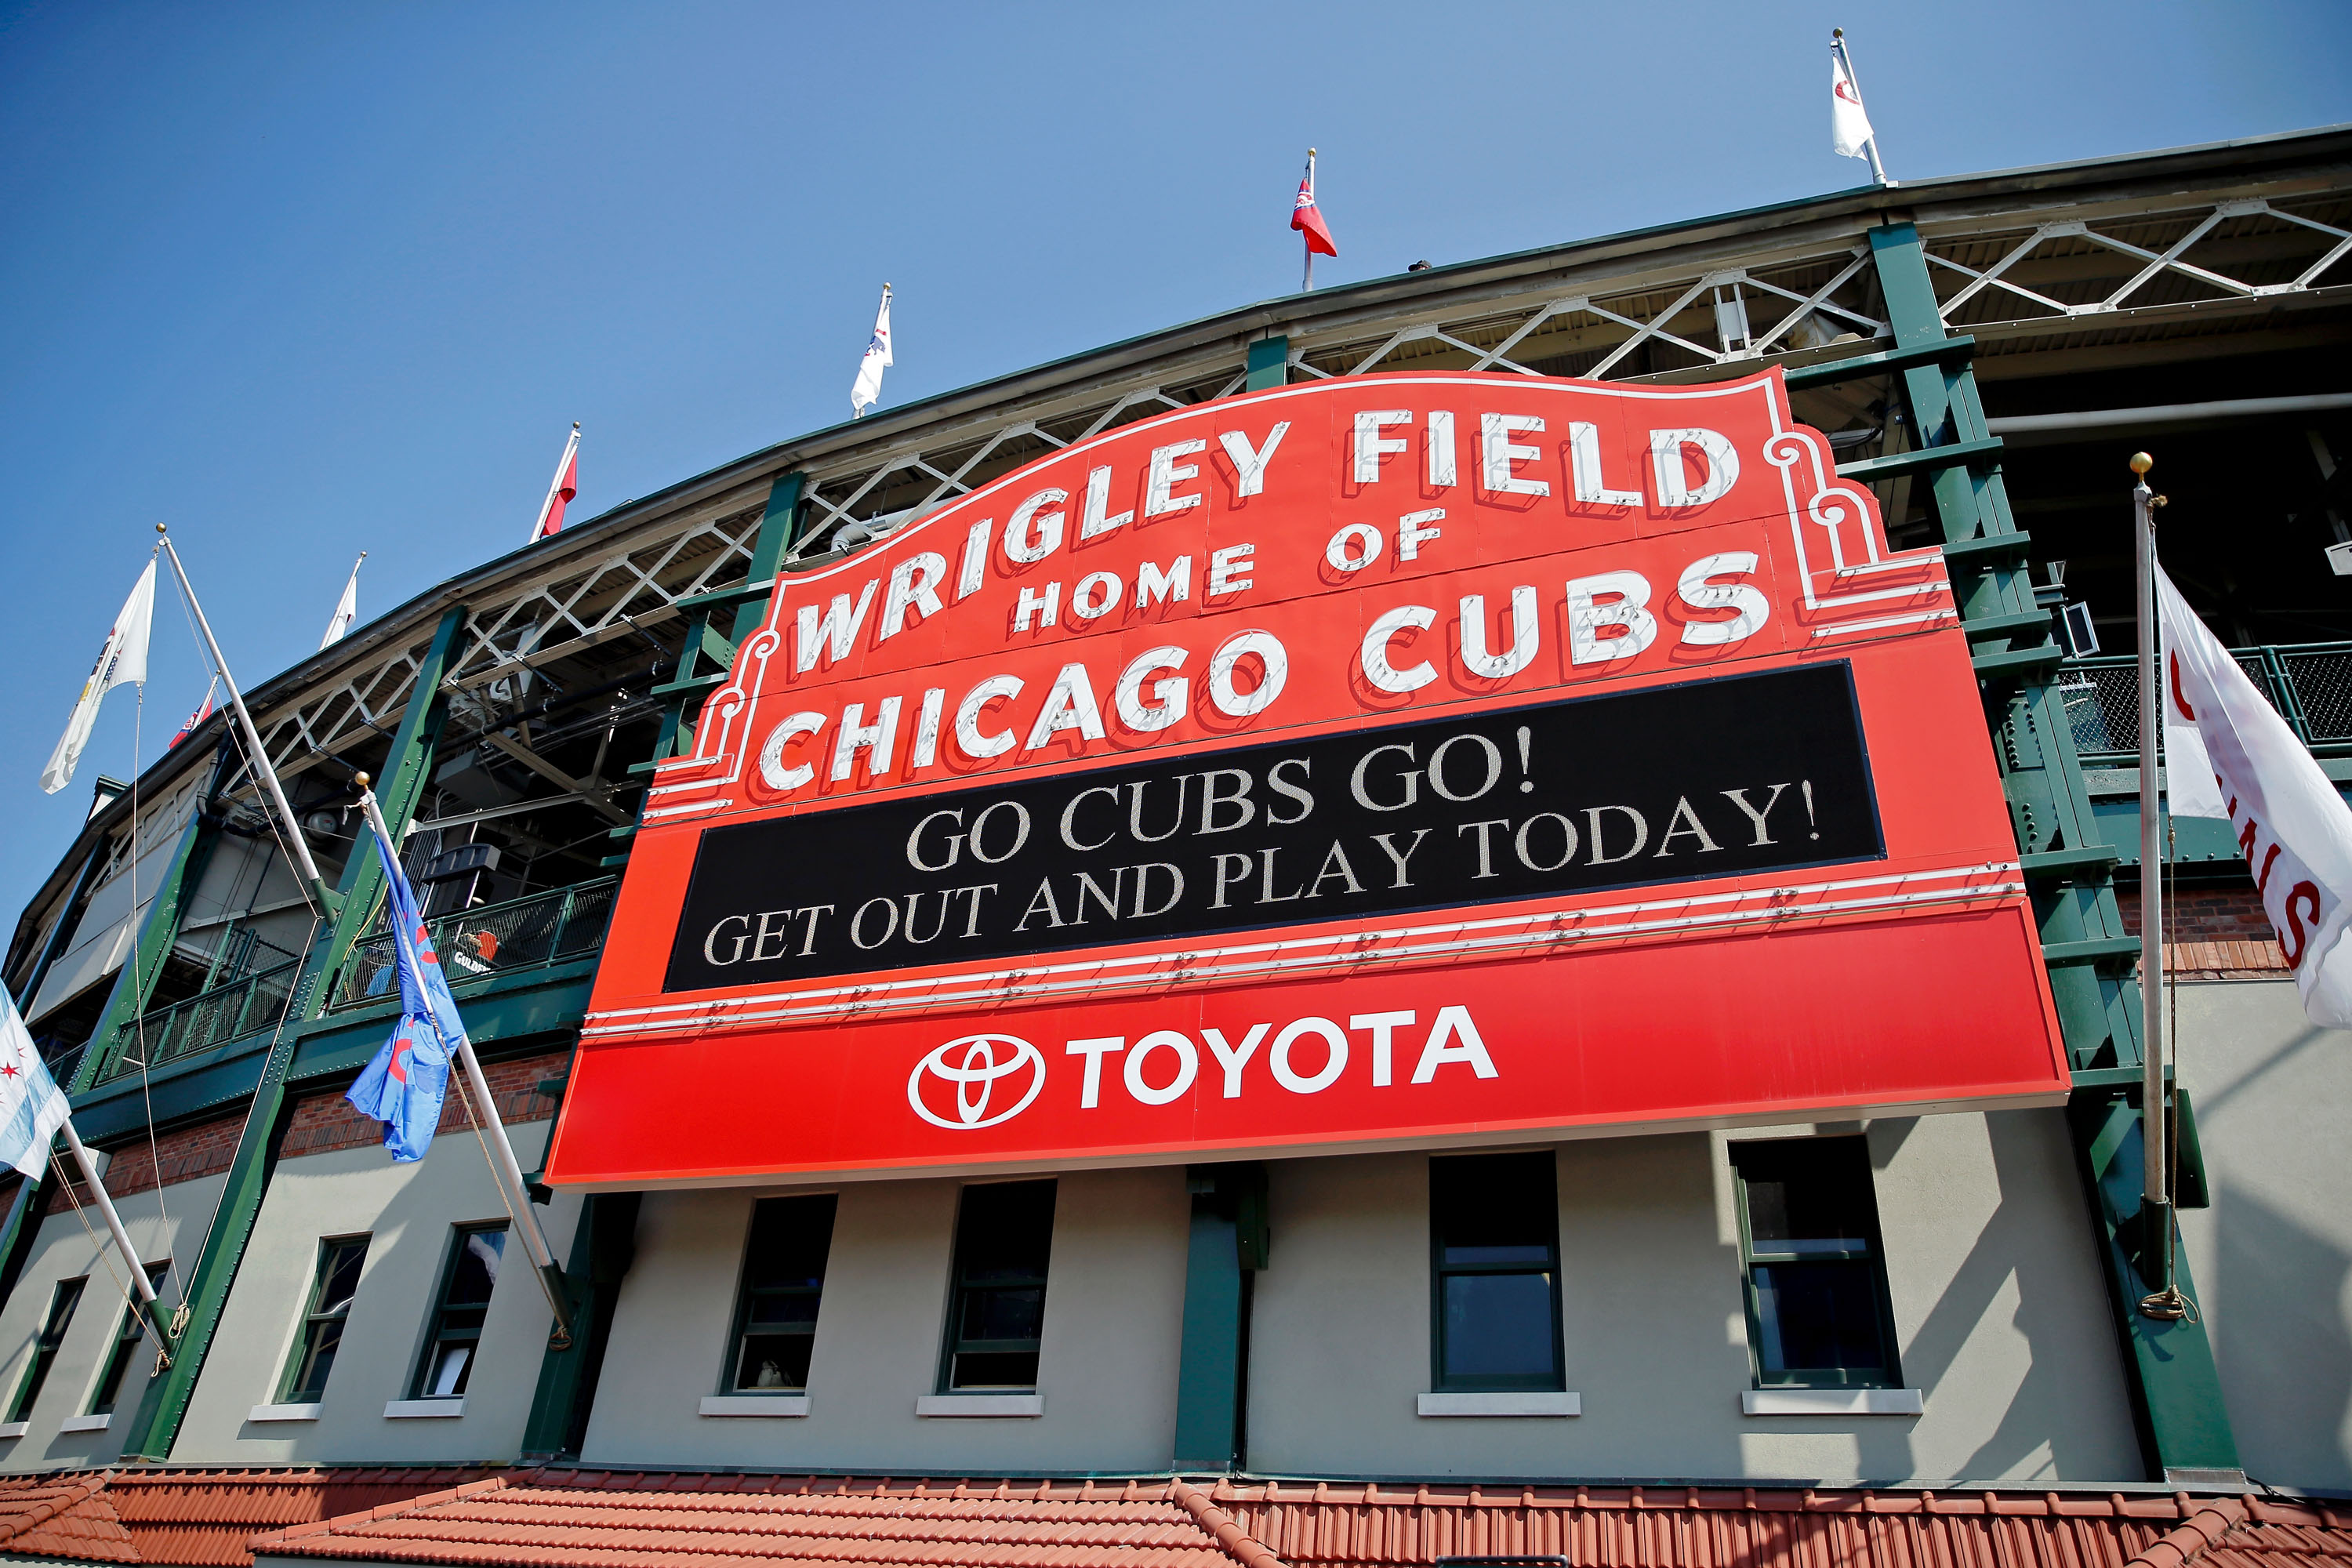 Chicago Subway Map Wrigley Field.Wrigley Field The Ultimate Guide To The Chicago Cubs Ballpark